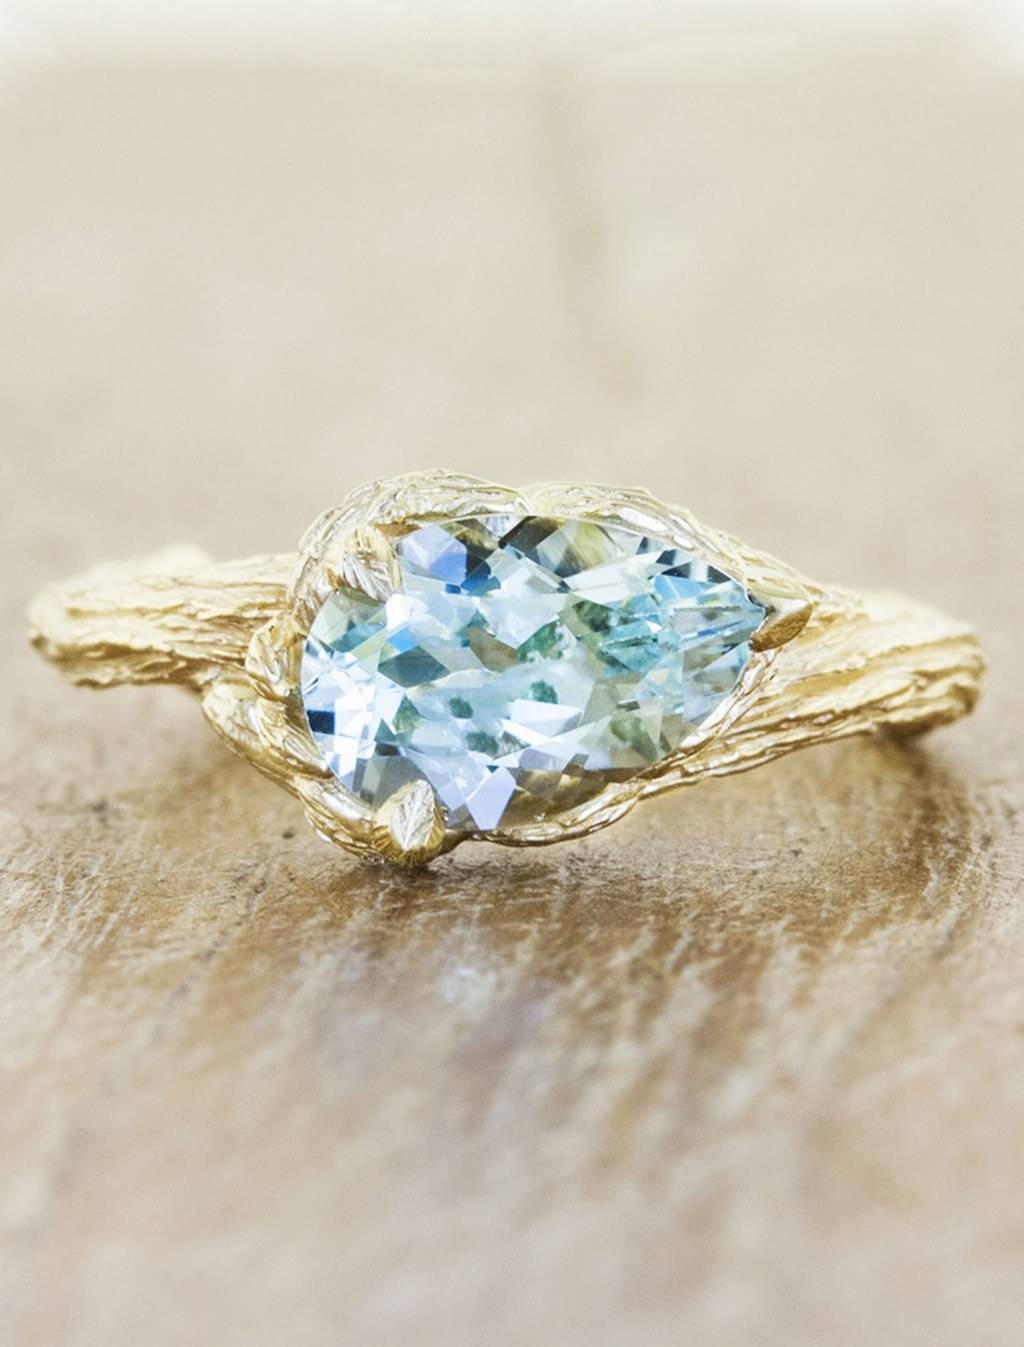 Unique Engagement Rings: Rustic Engagement Rings, Eco Friendly Pertaining To Rustic Engagement Rings (View 11 of 15)